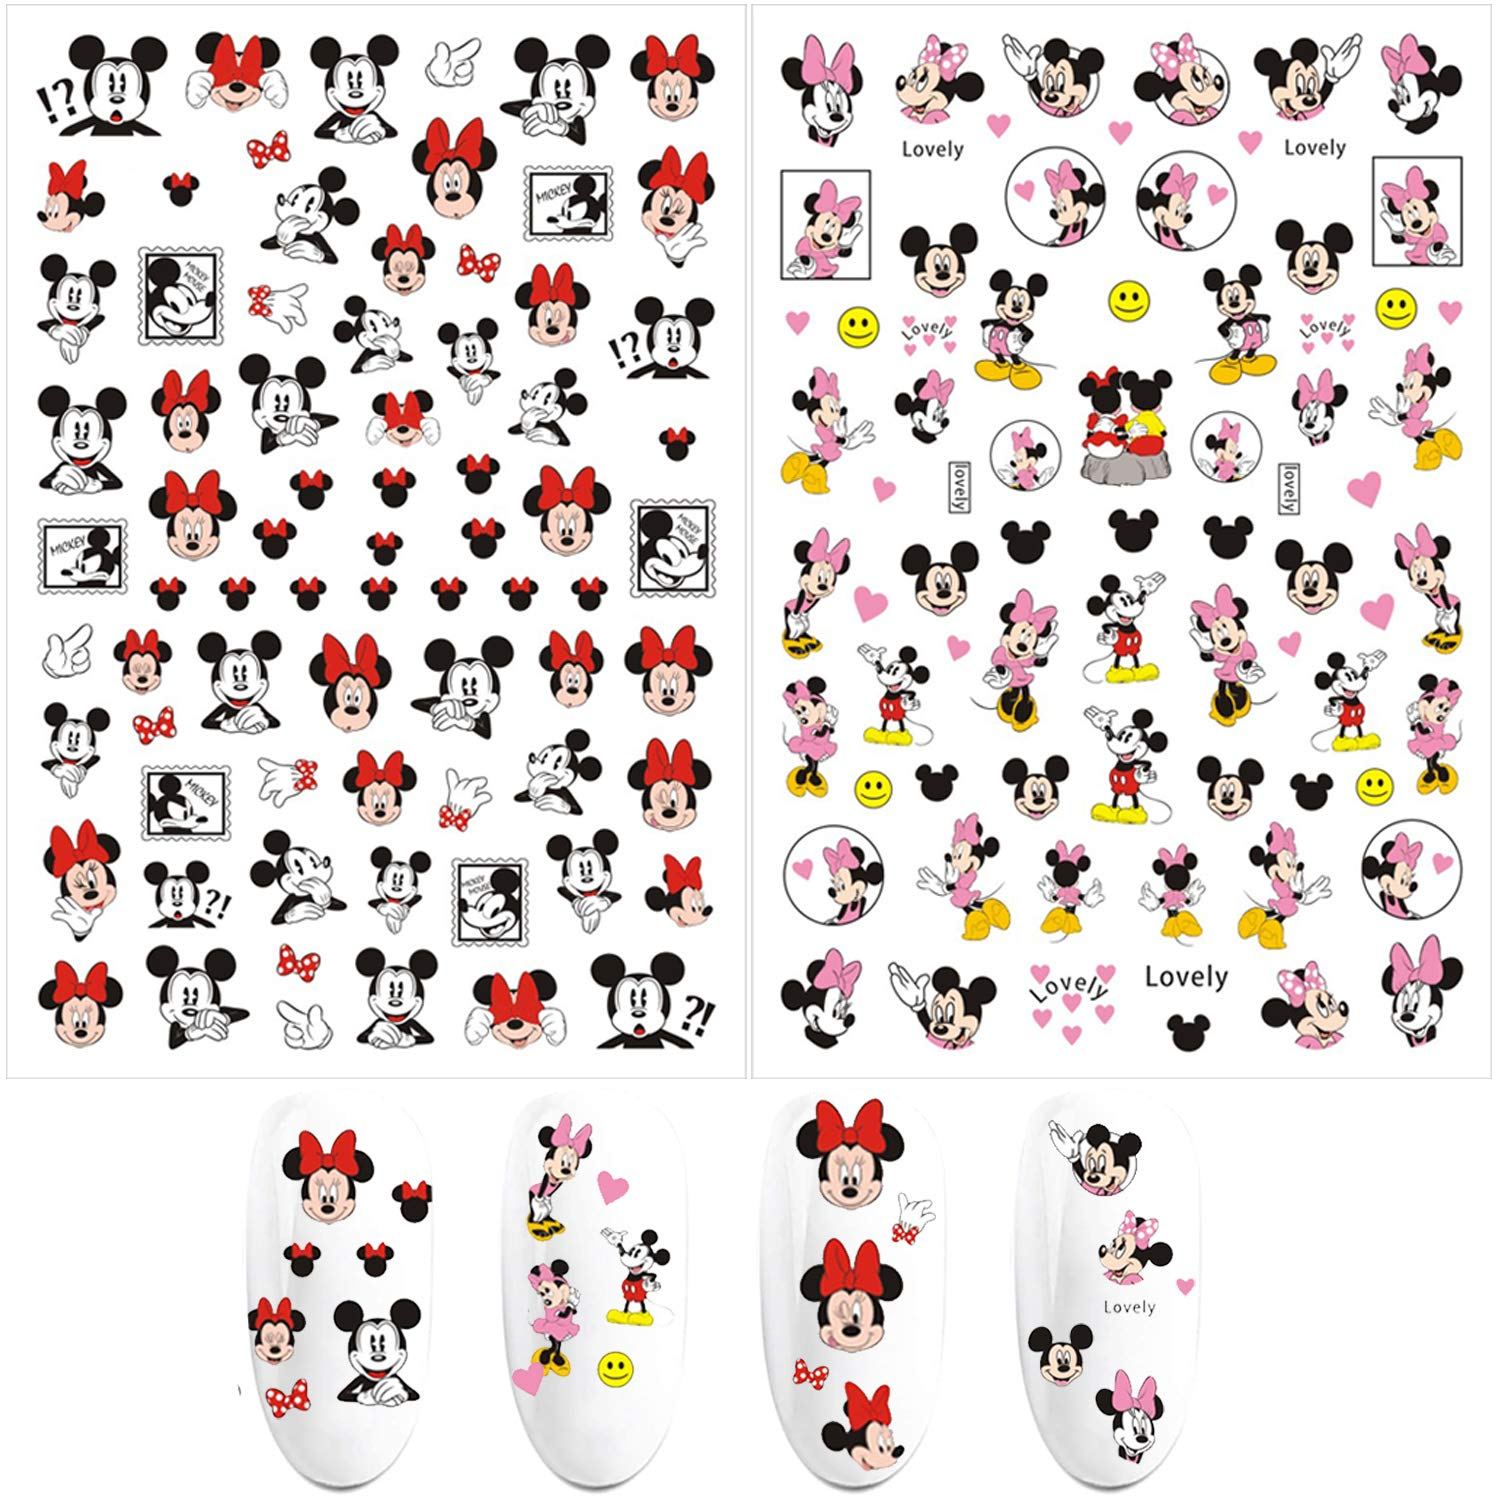 3D Nail Art Stickers Cute Decals Challenge the lowest Seasonal Wrap Introduction price Kawaii Adhesive Self